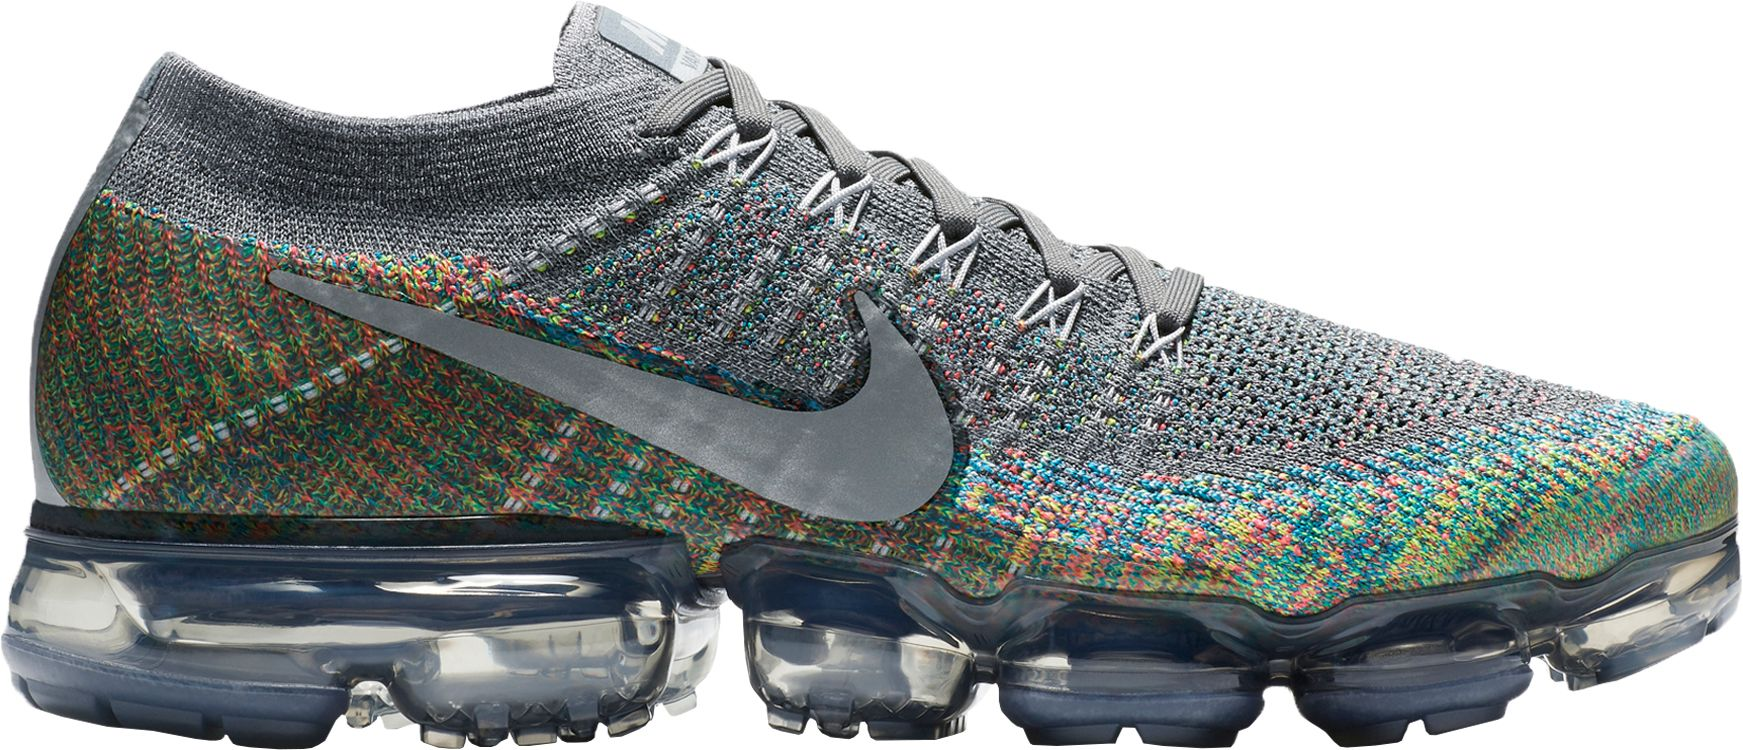 Nike Hombres Air Vapormax Vapormax Air Flyknit Running Zapatos Dick' S Sporting Goods 073b9b